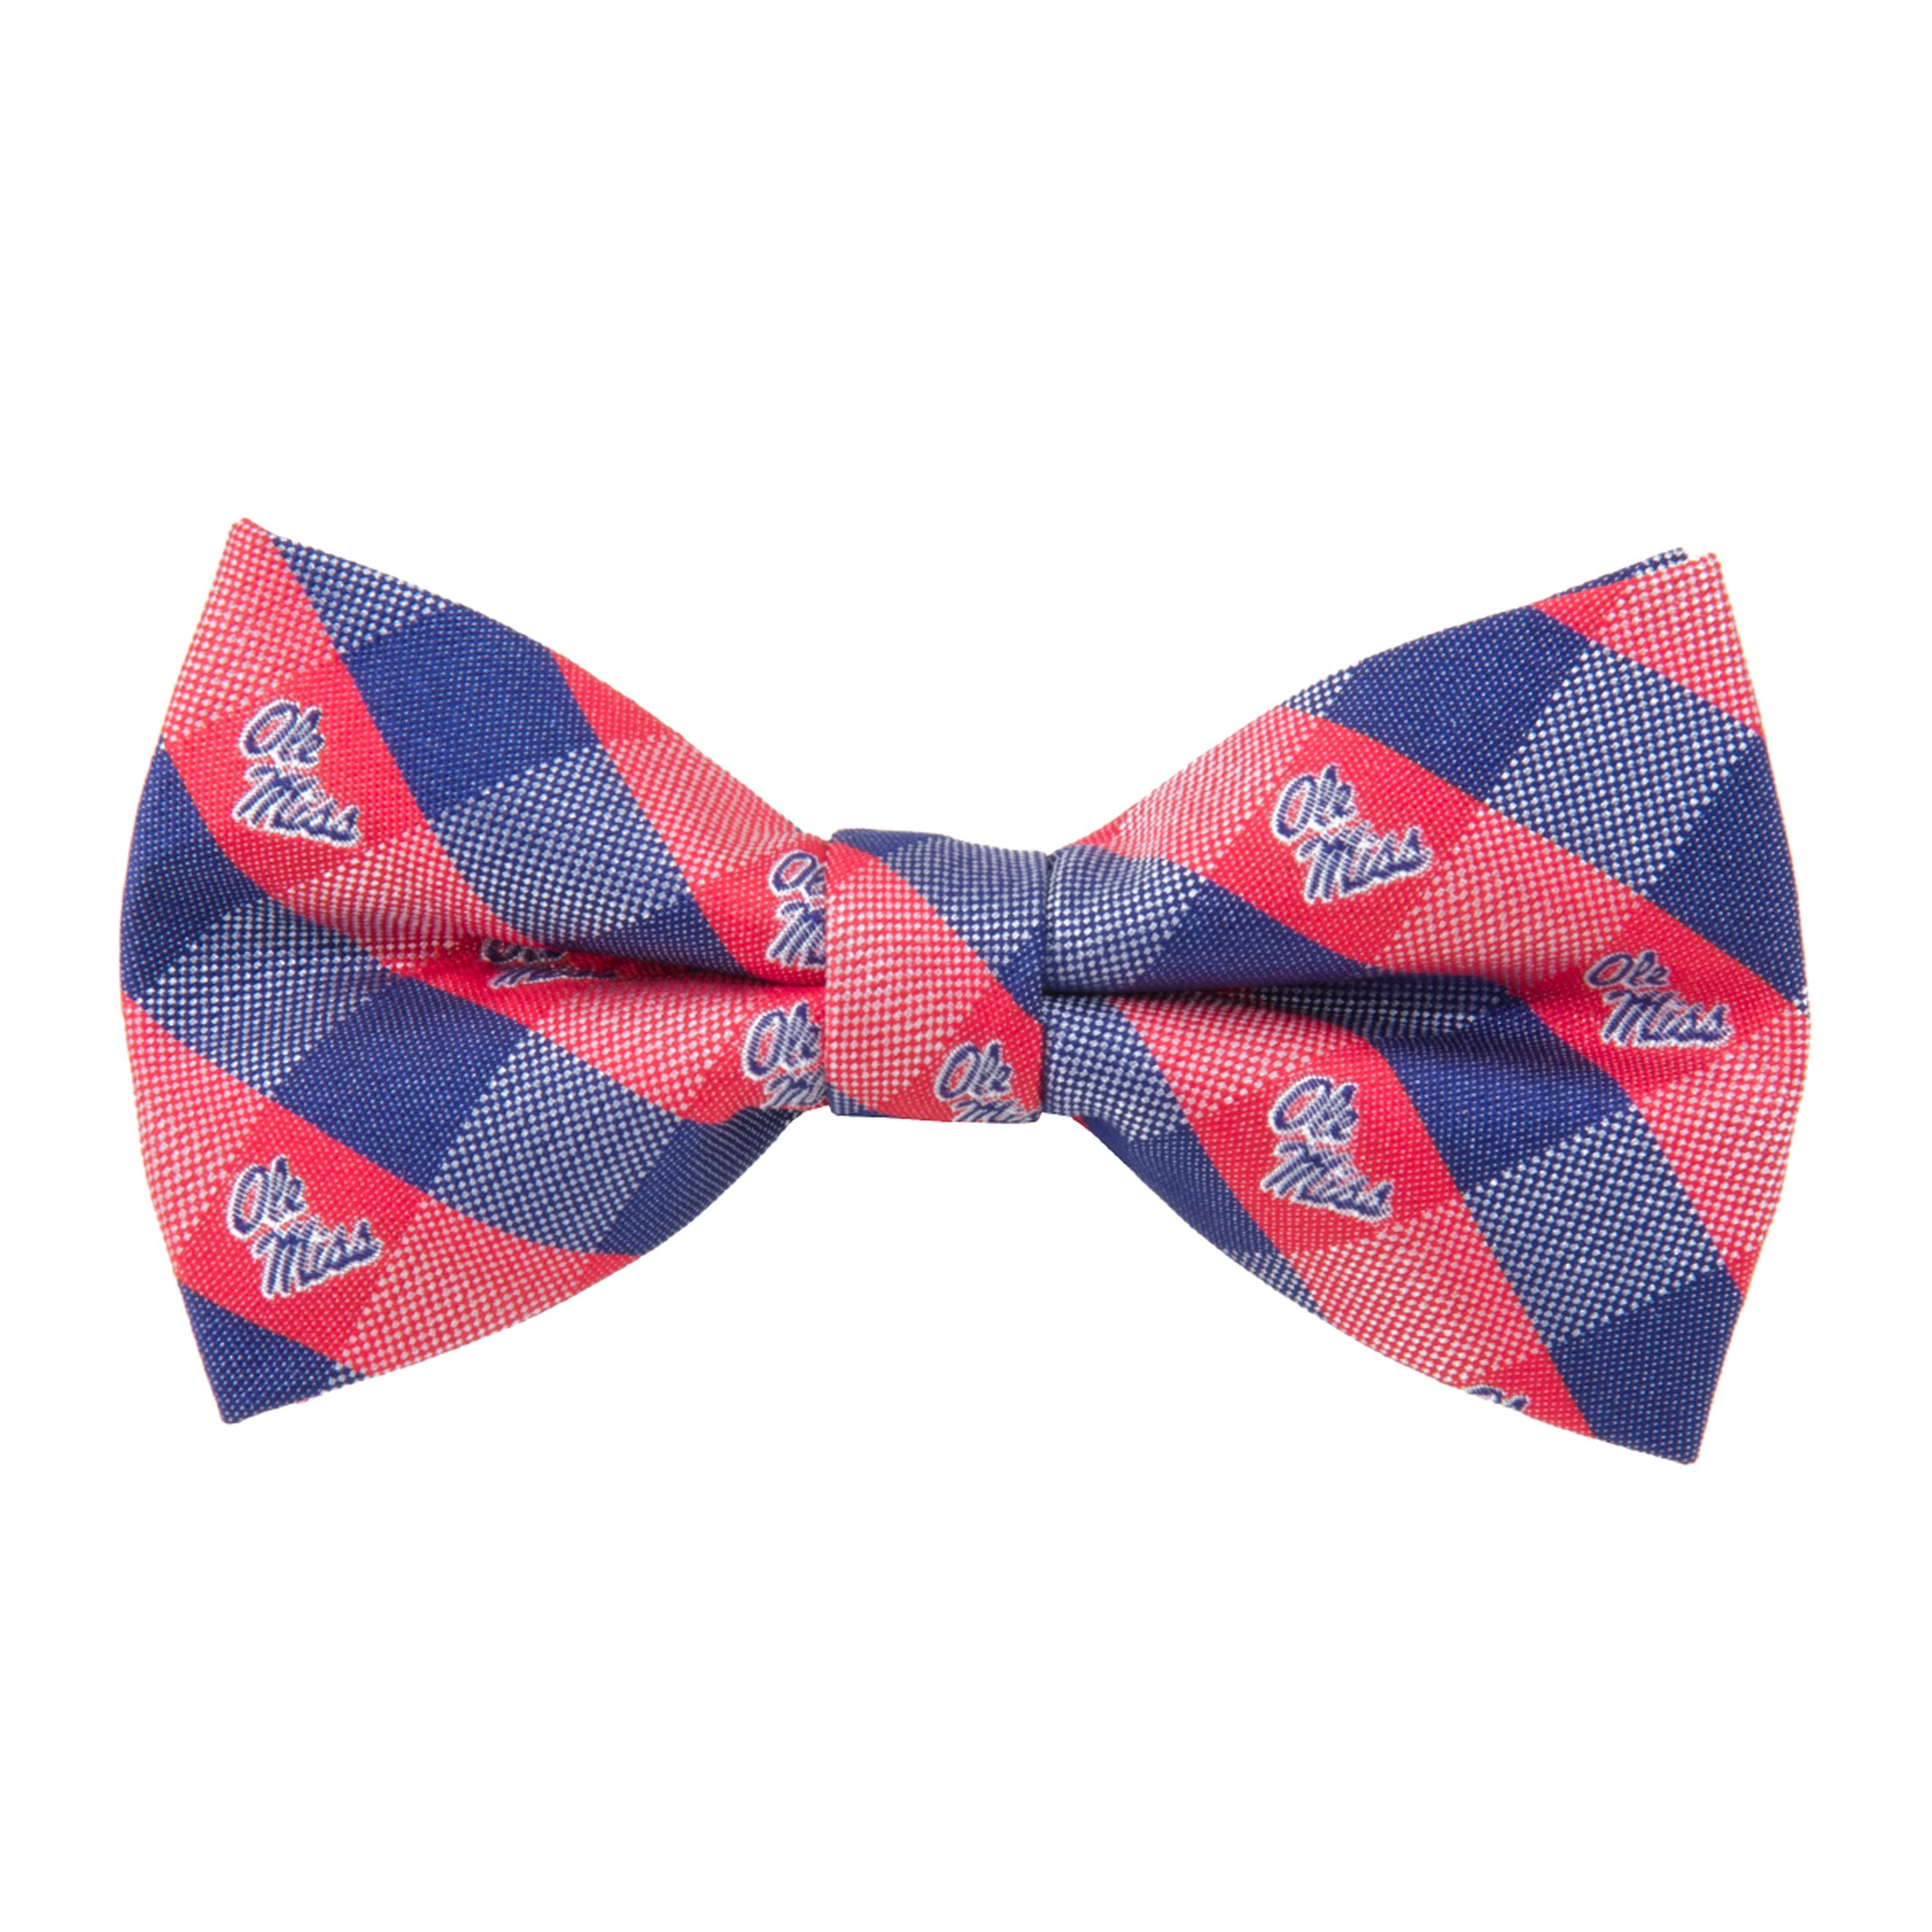 Ole Miss Bow Tie - Check